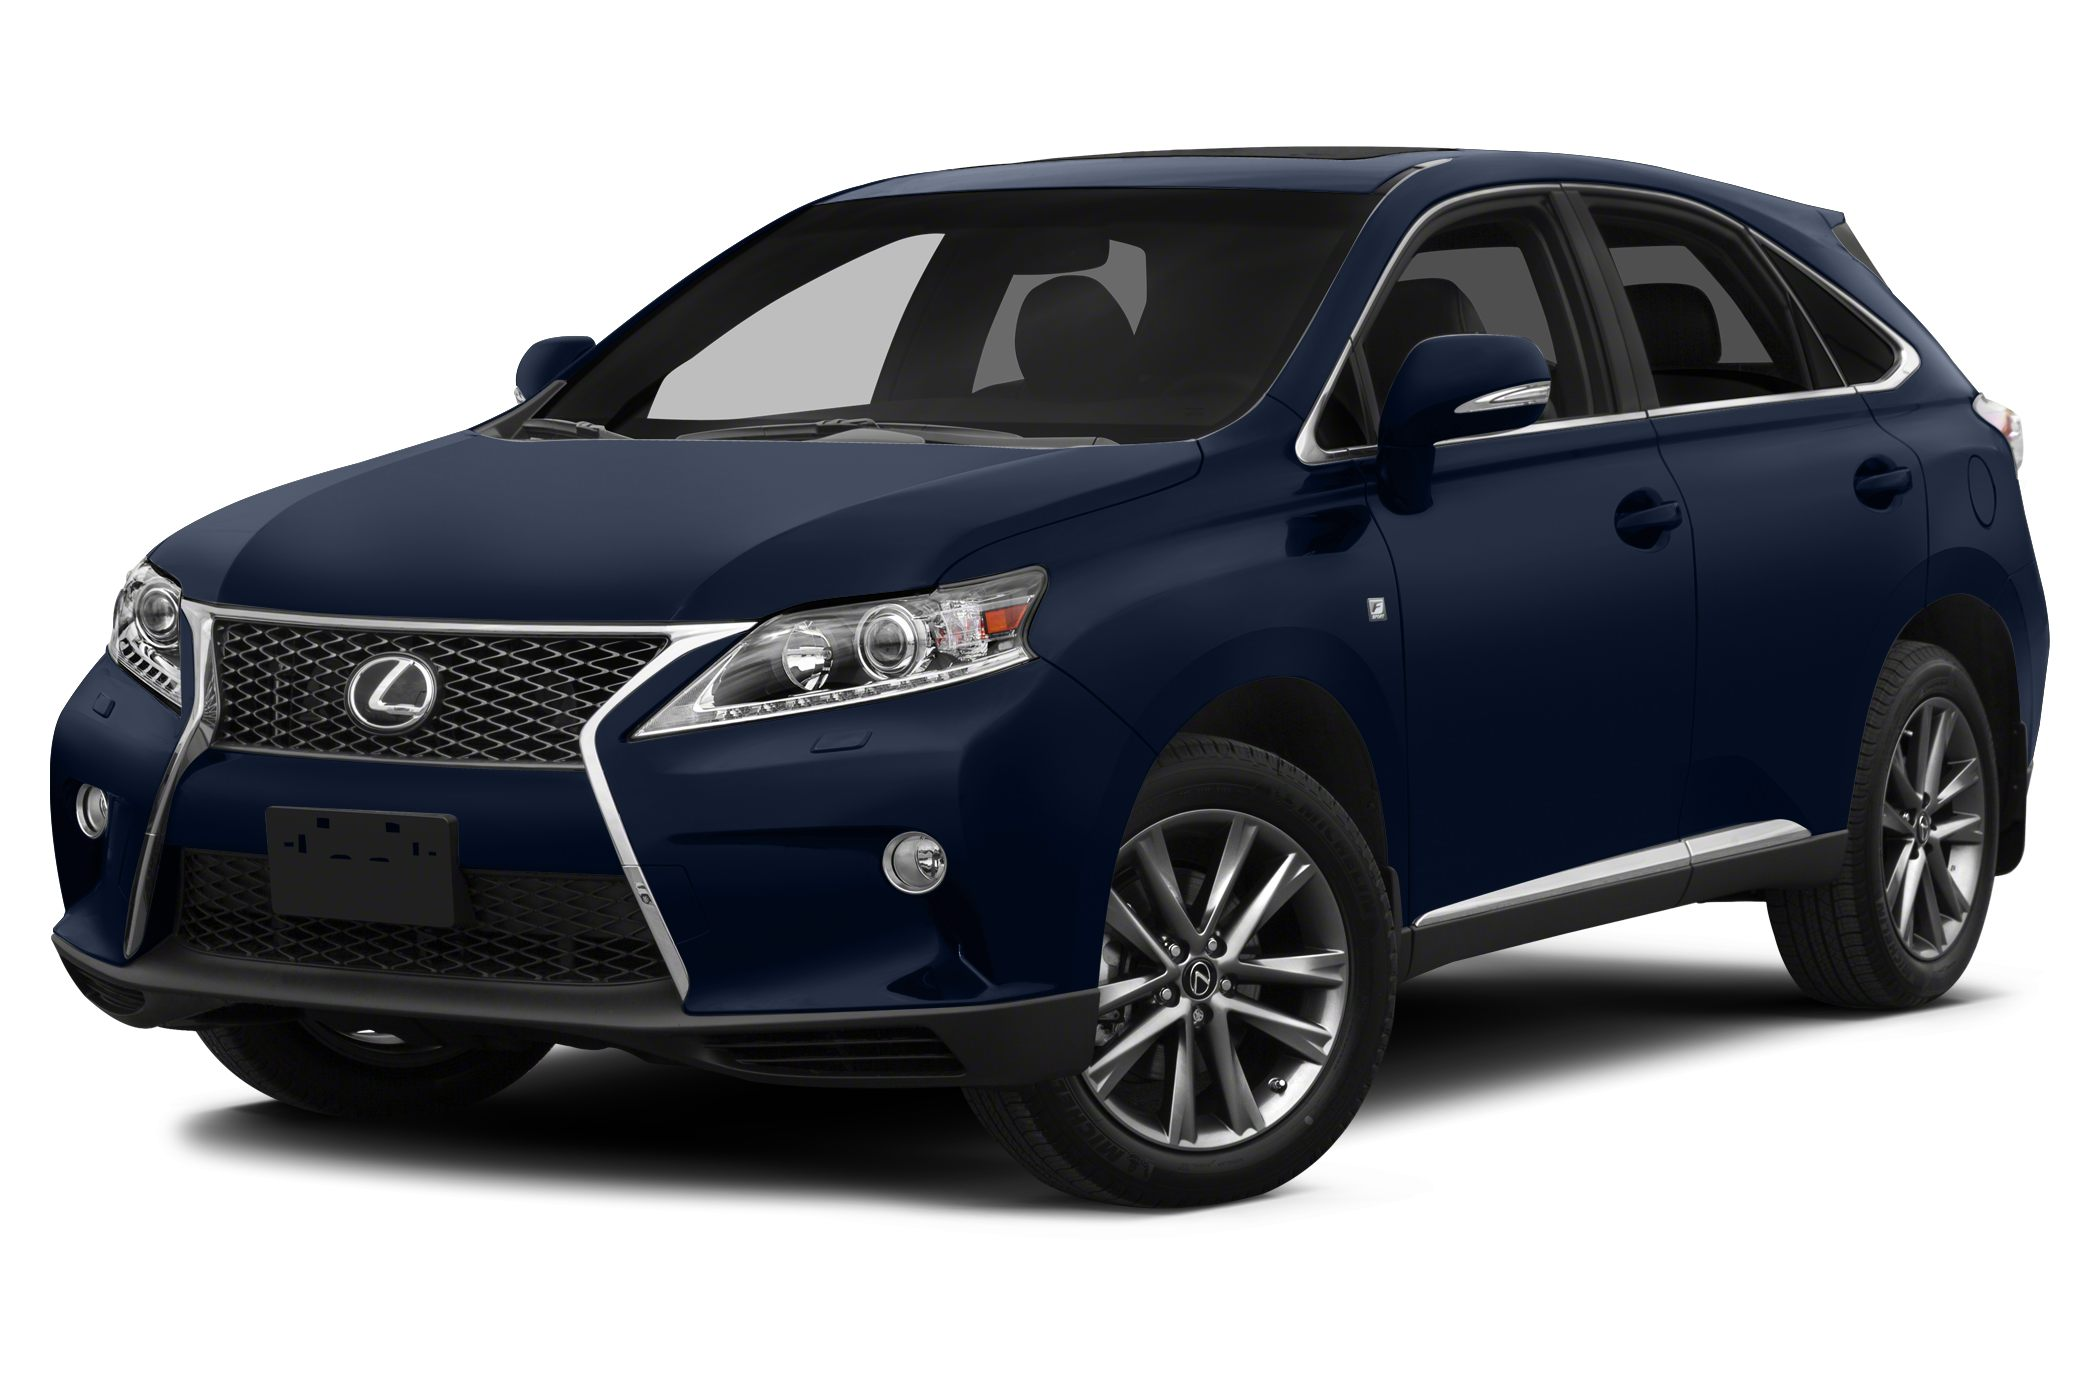 2015 Lexus RX 350 F Sport SUV for sale in Owings Mills for $50,659 with 11 miles.